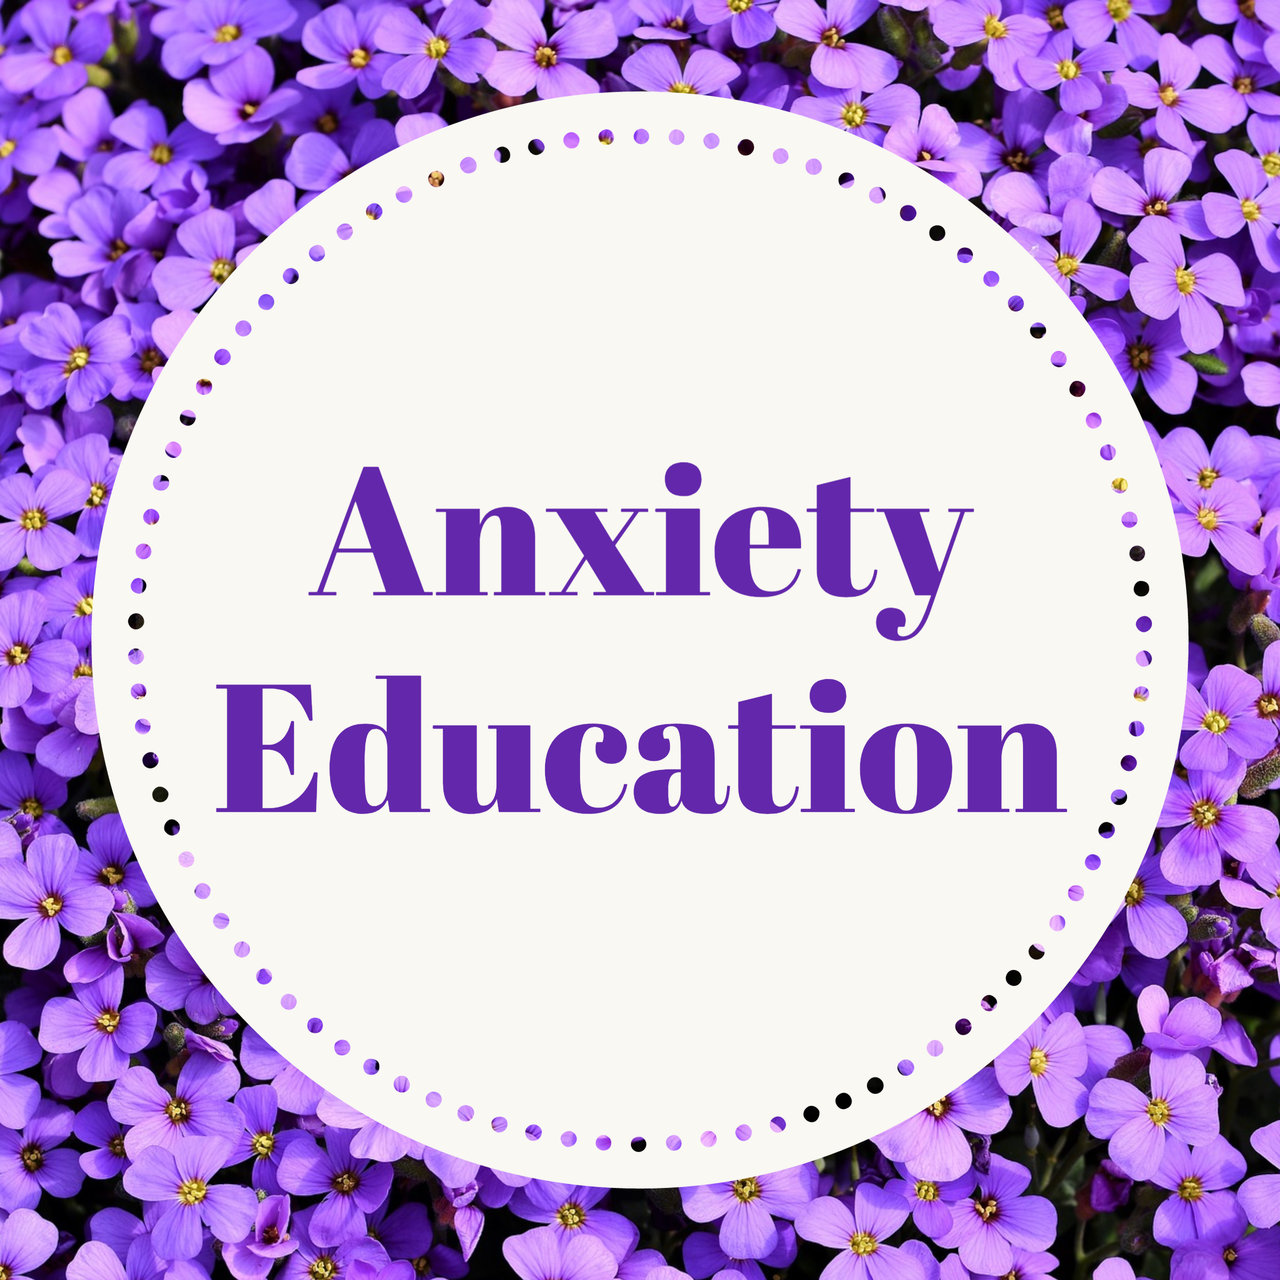 Anxiety Education